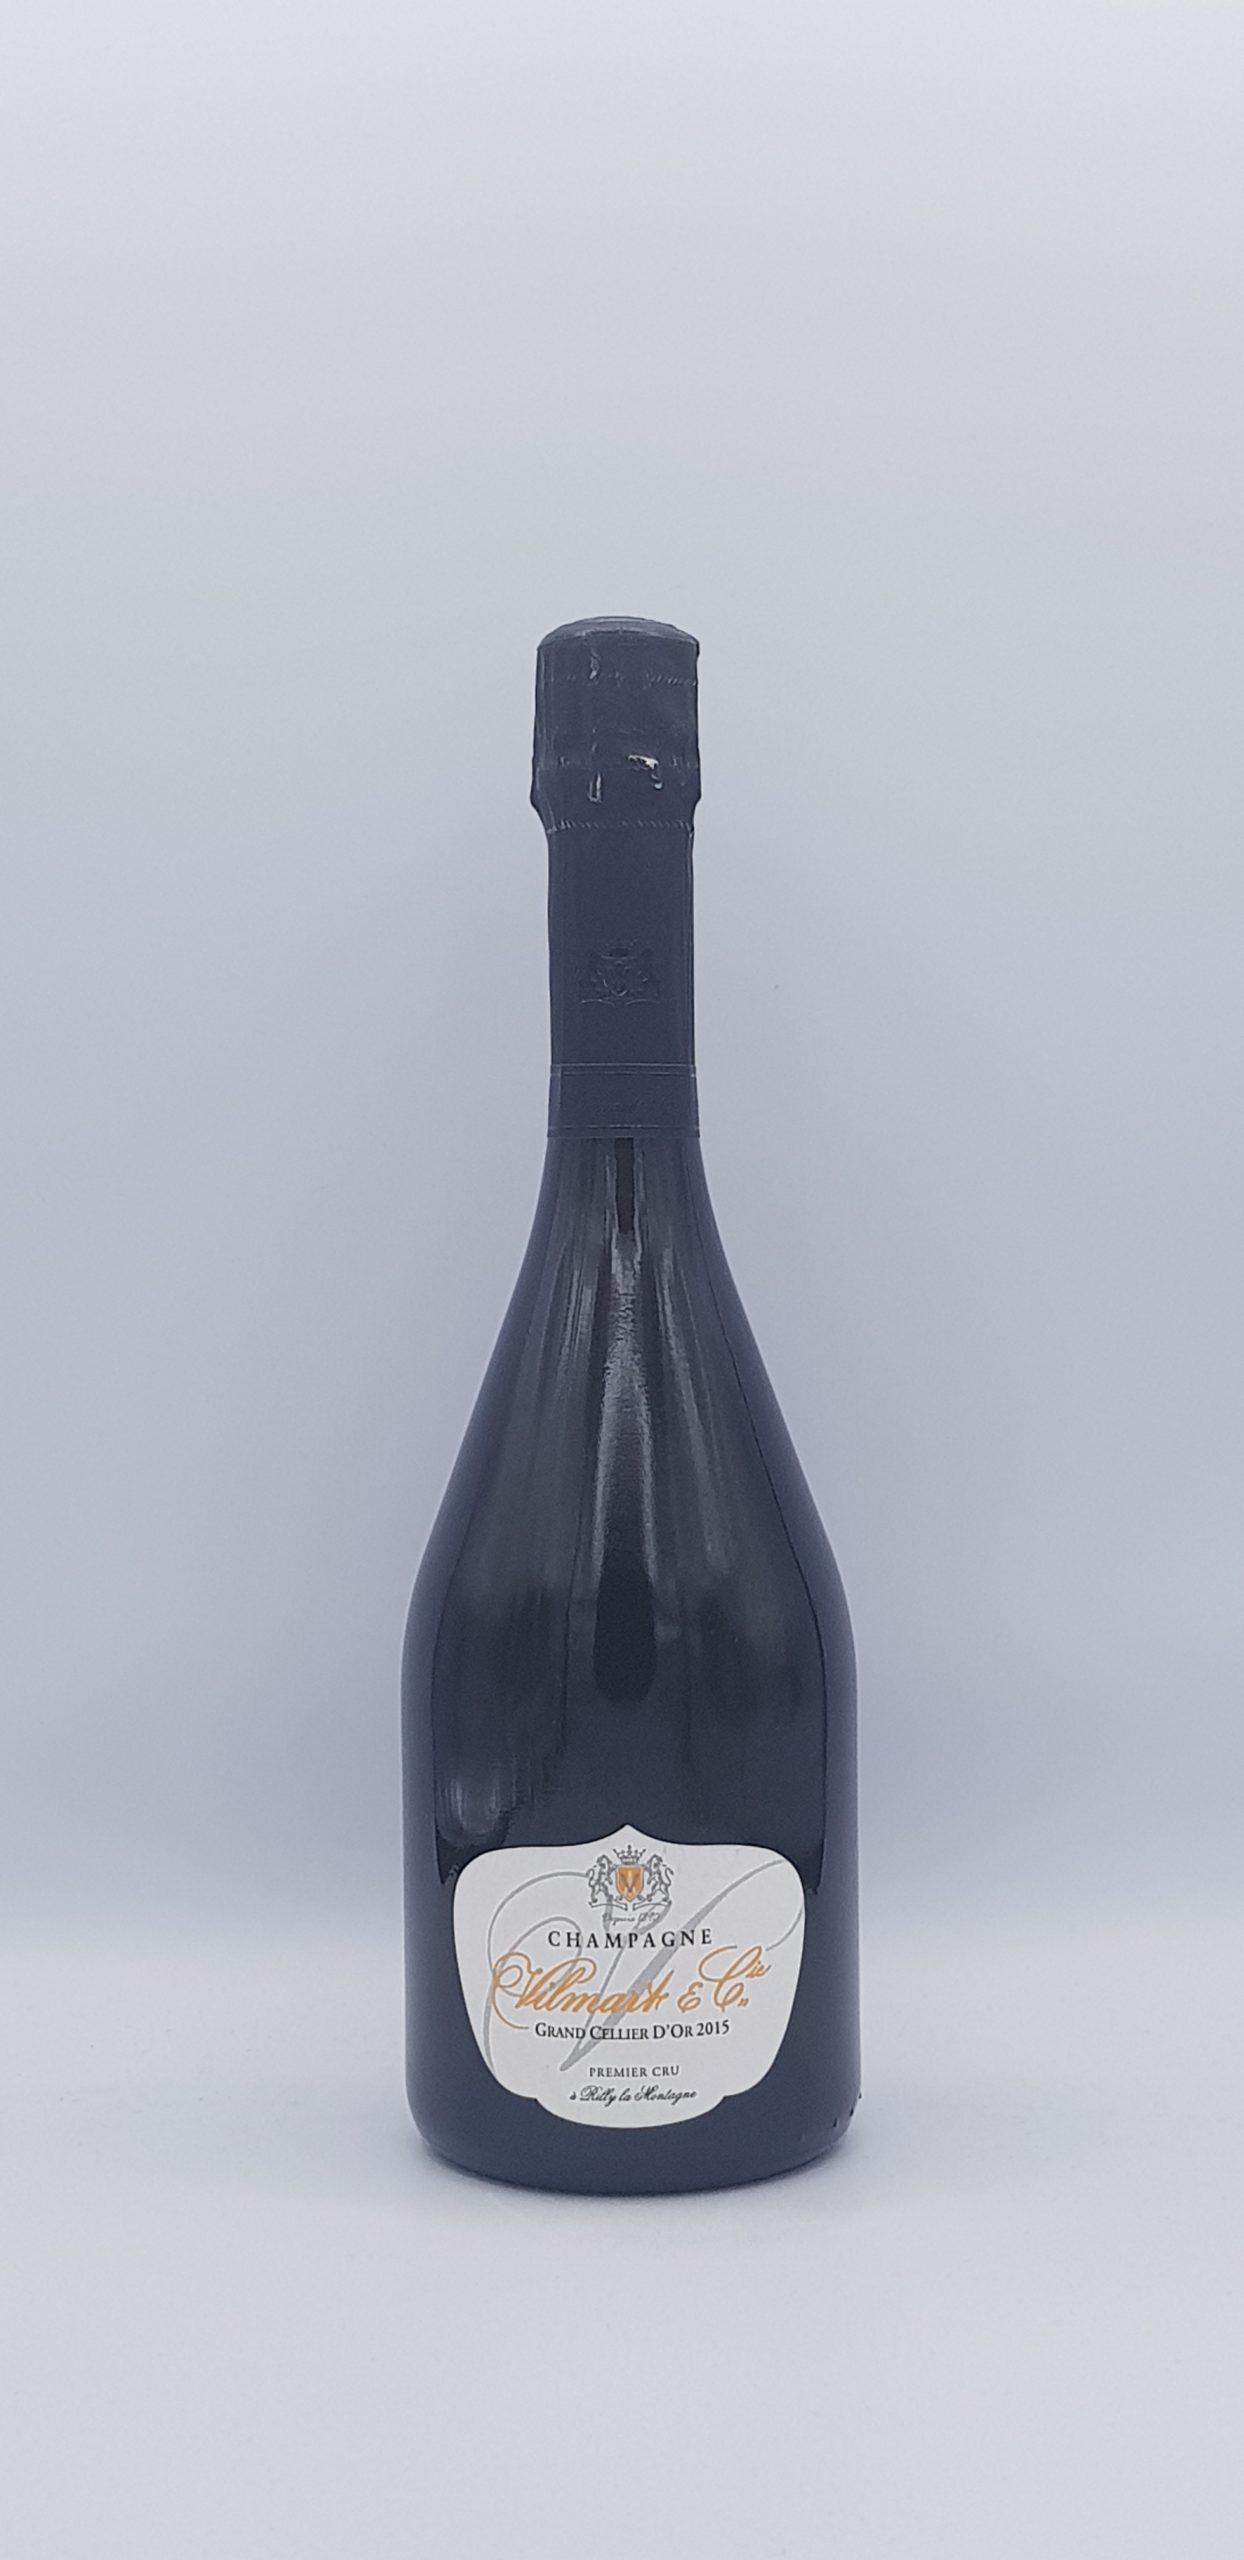 Champagne Grand Cellier d'Or